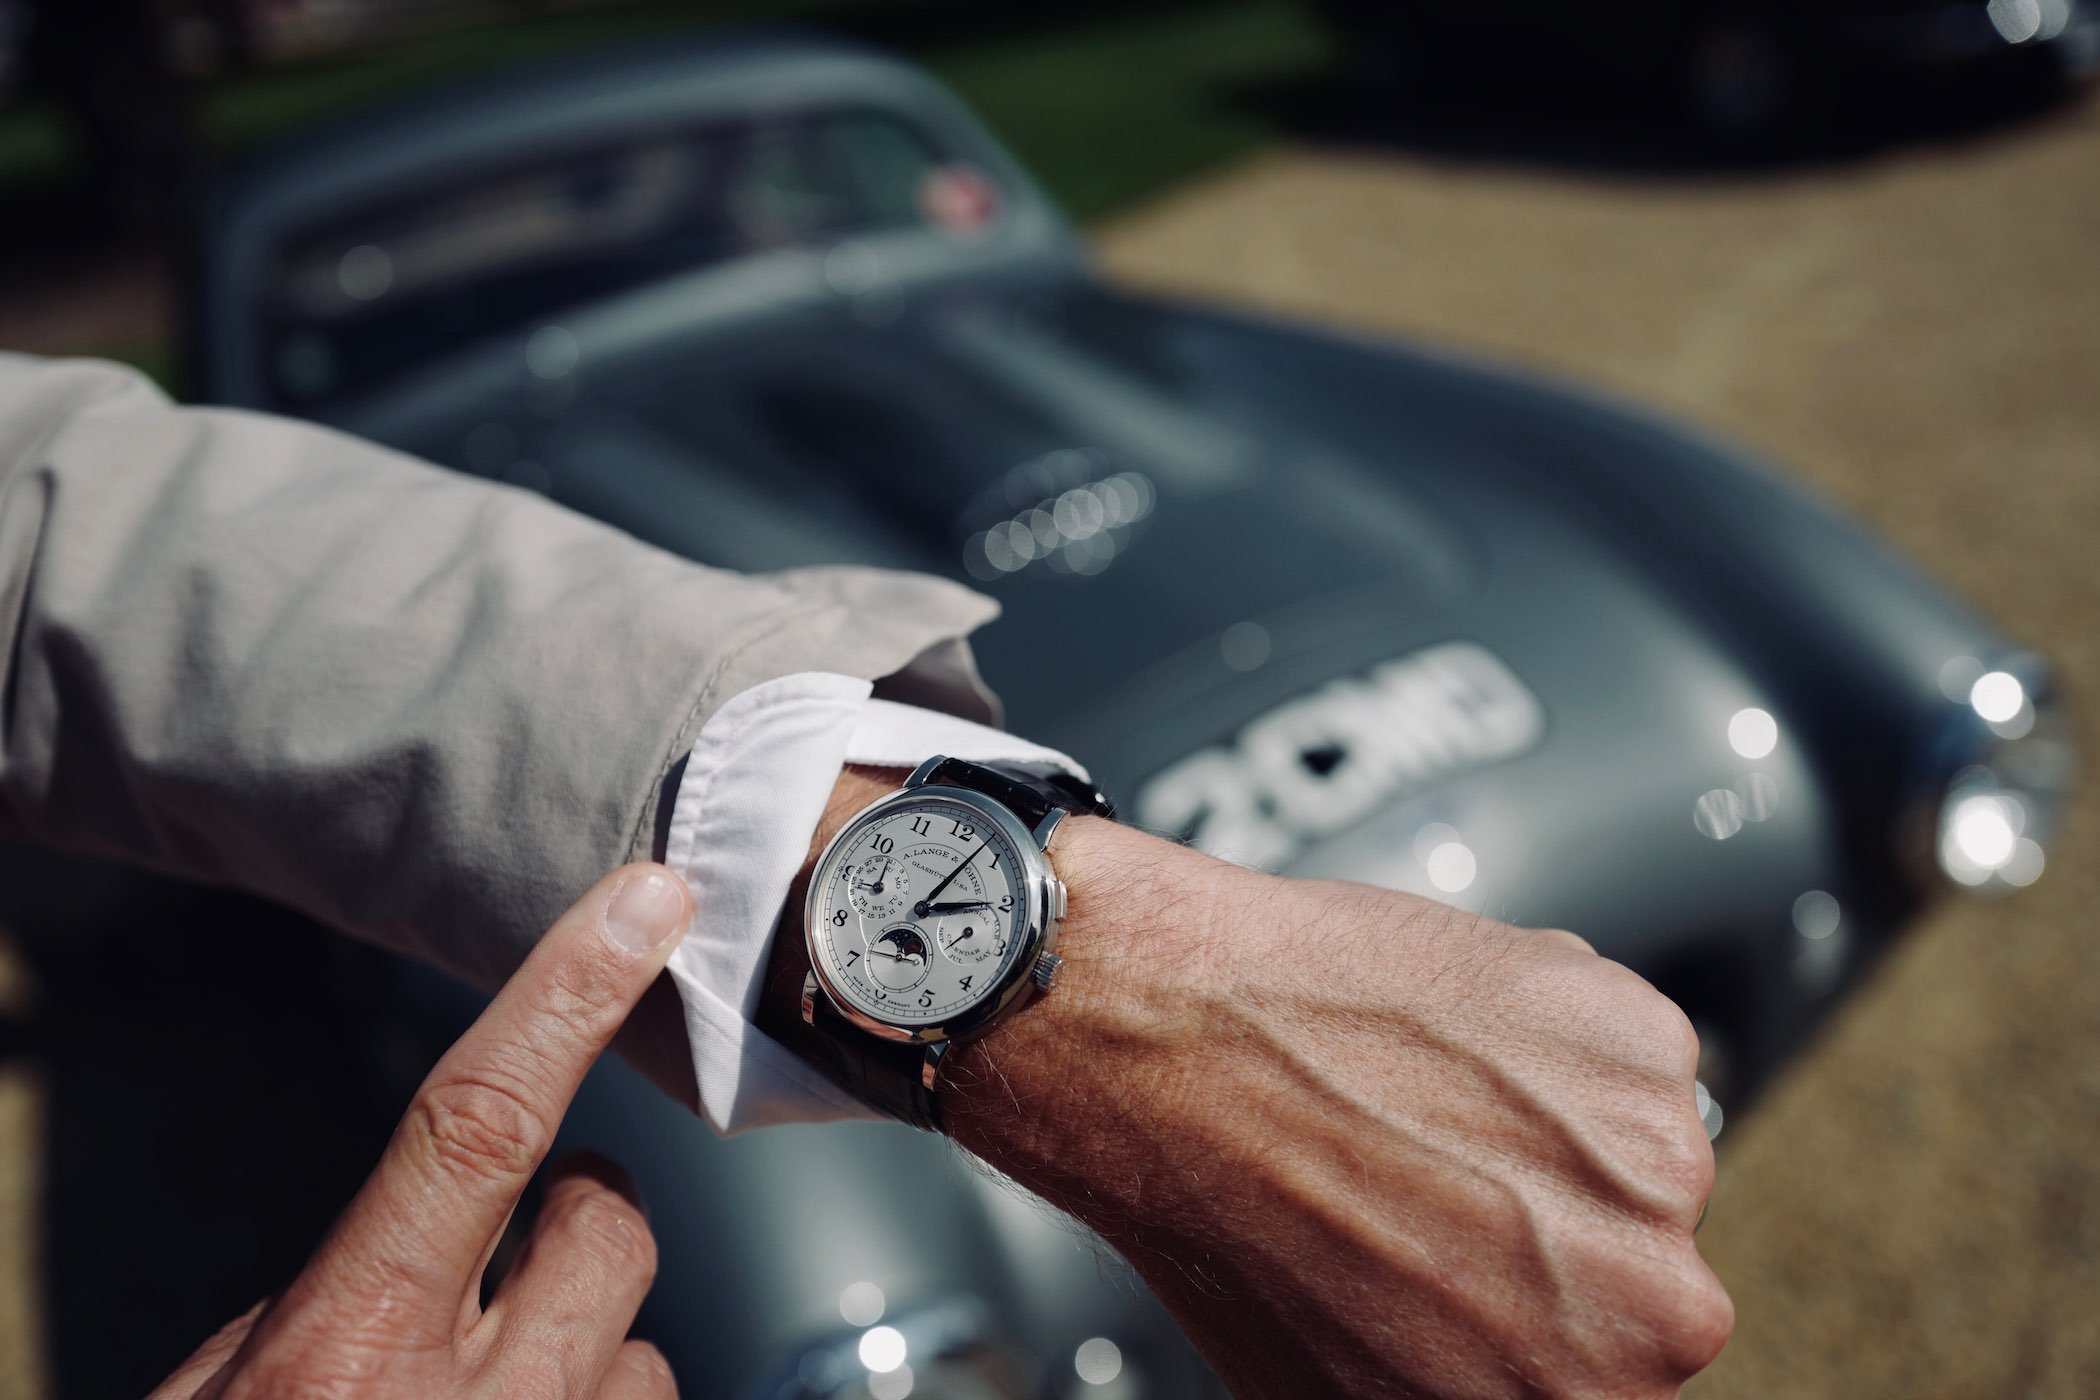 Monochrome Watches:  Event A. Lange & Söhne at Concours of Elegance, An Interview with CEO Wilhelm Schmid